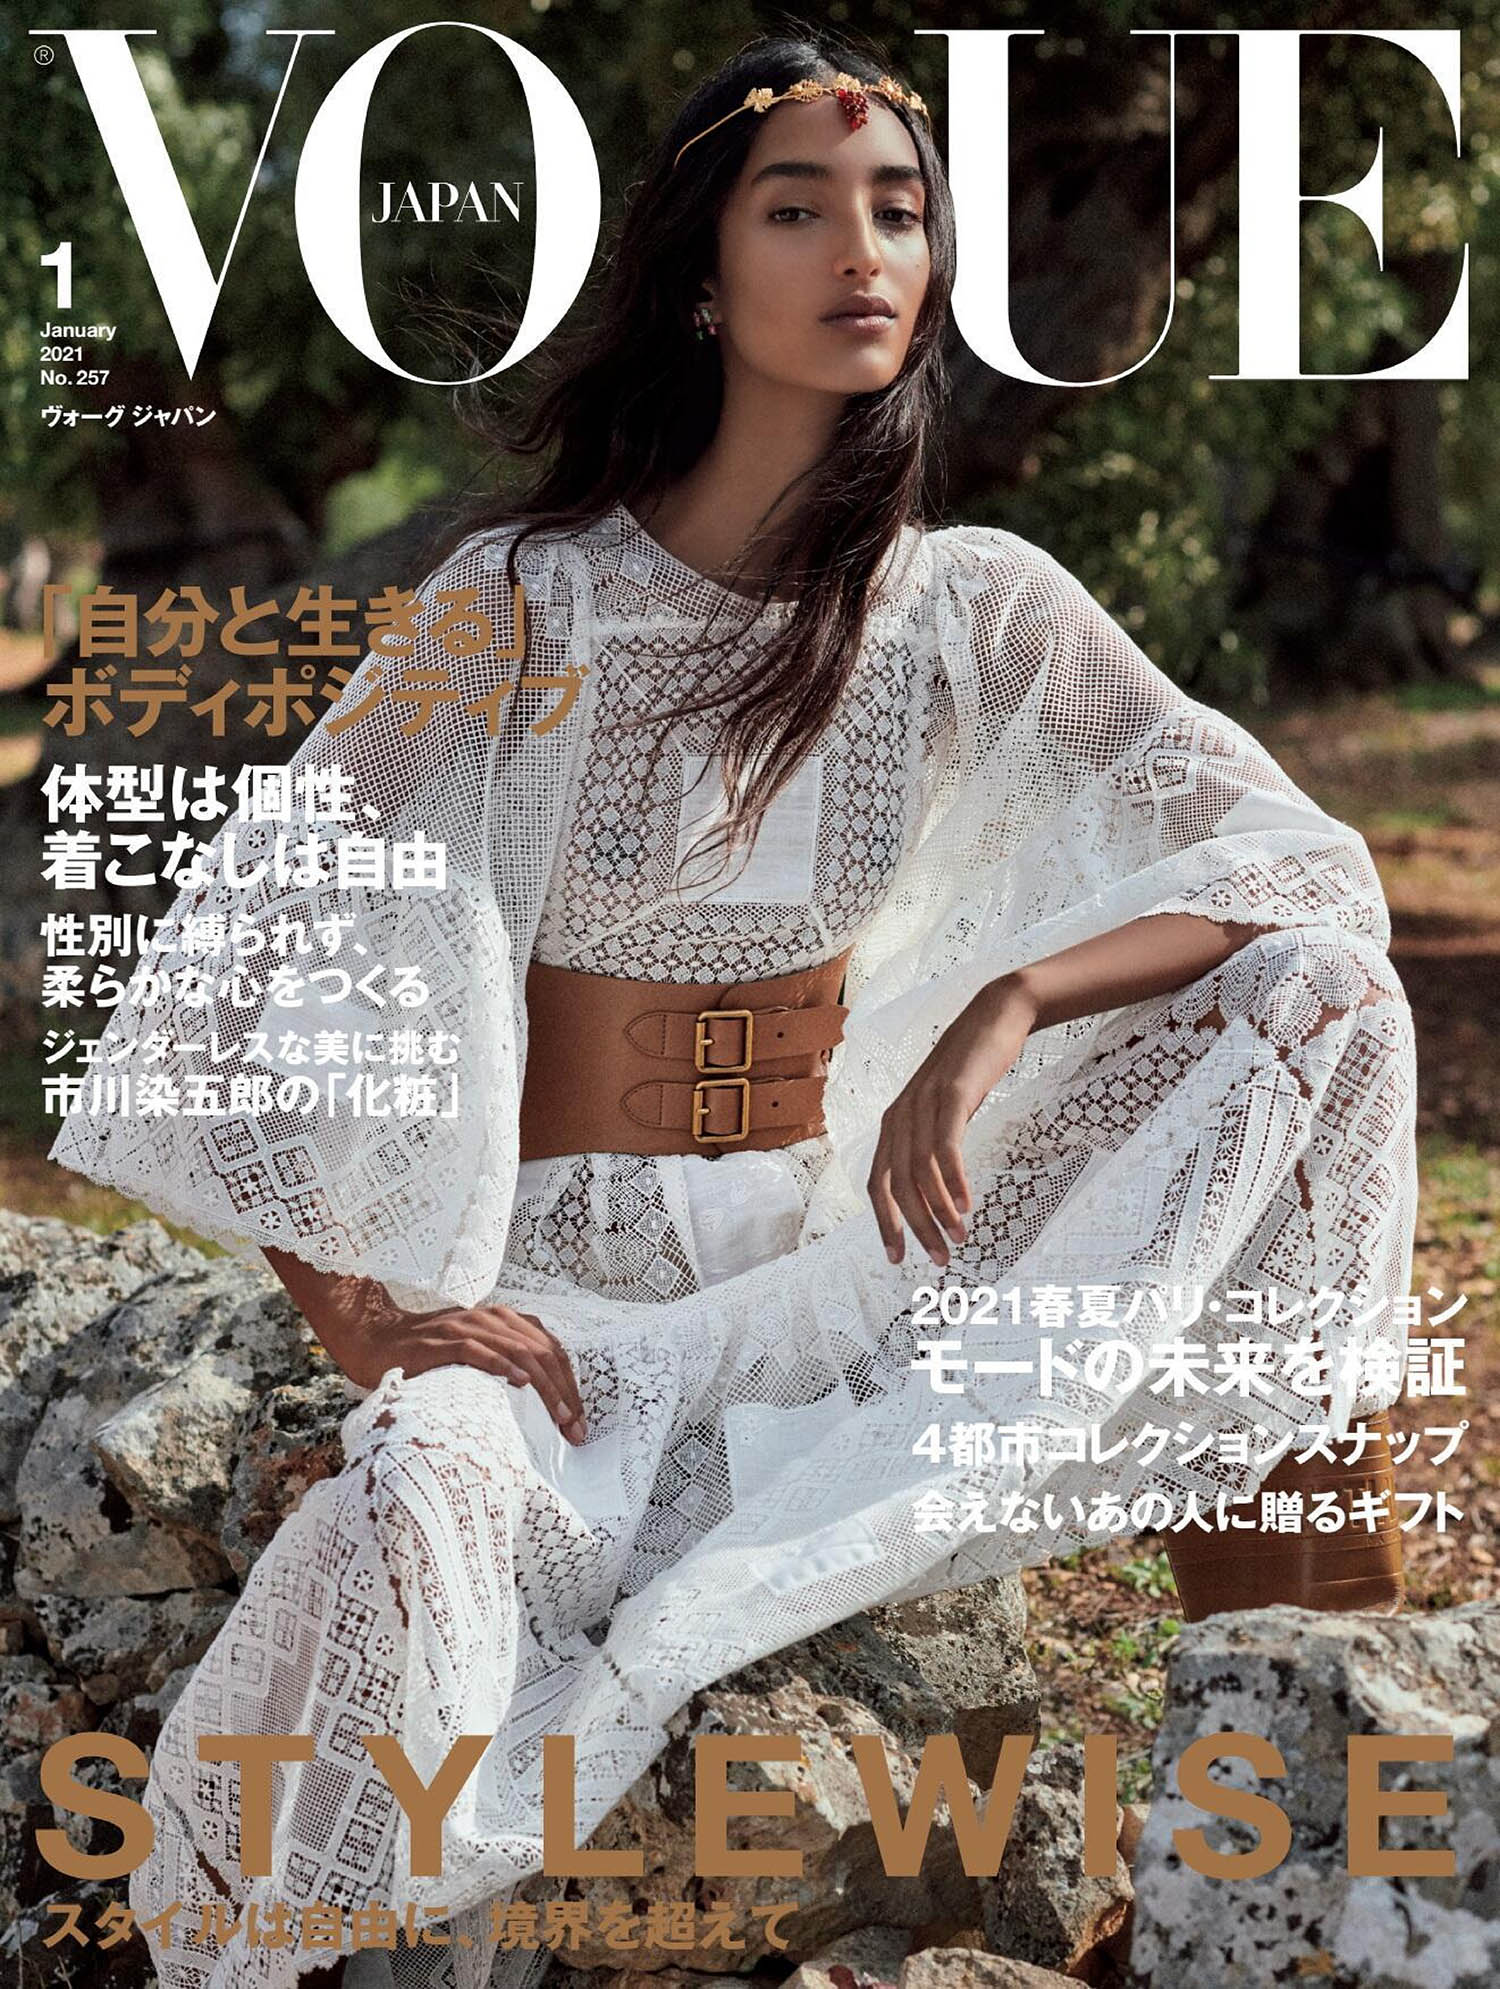 Mona Tougaard covers Vogue Japan January 2021 by Giampaolo Sgura